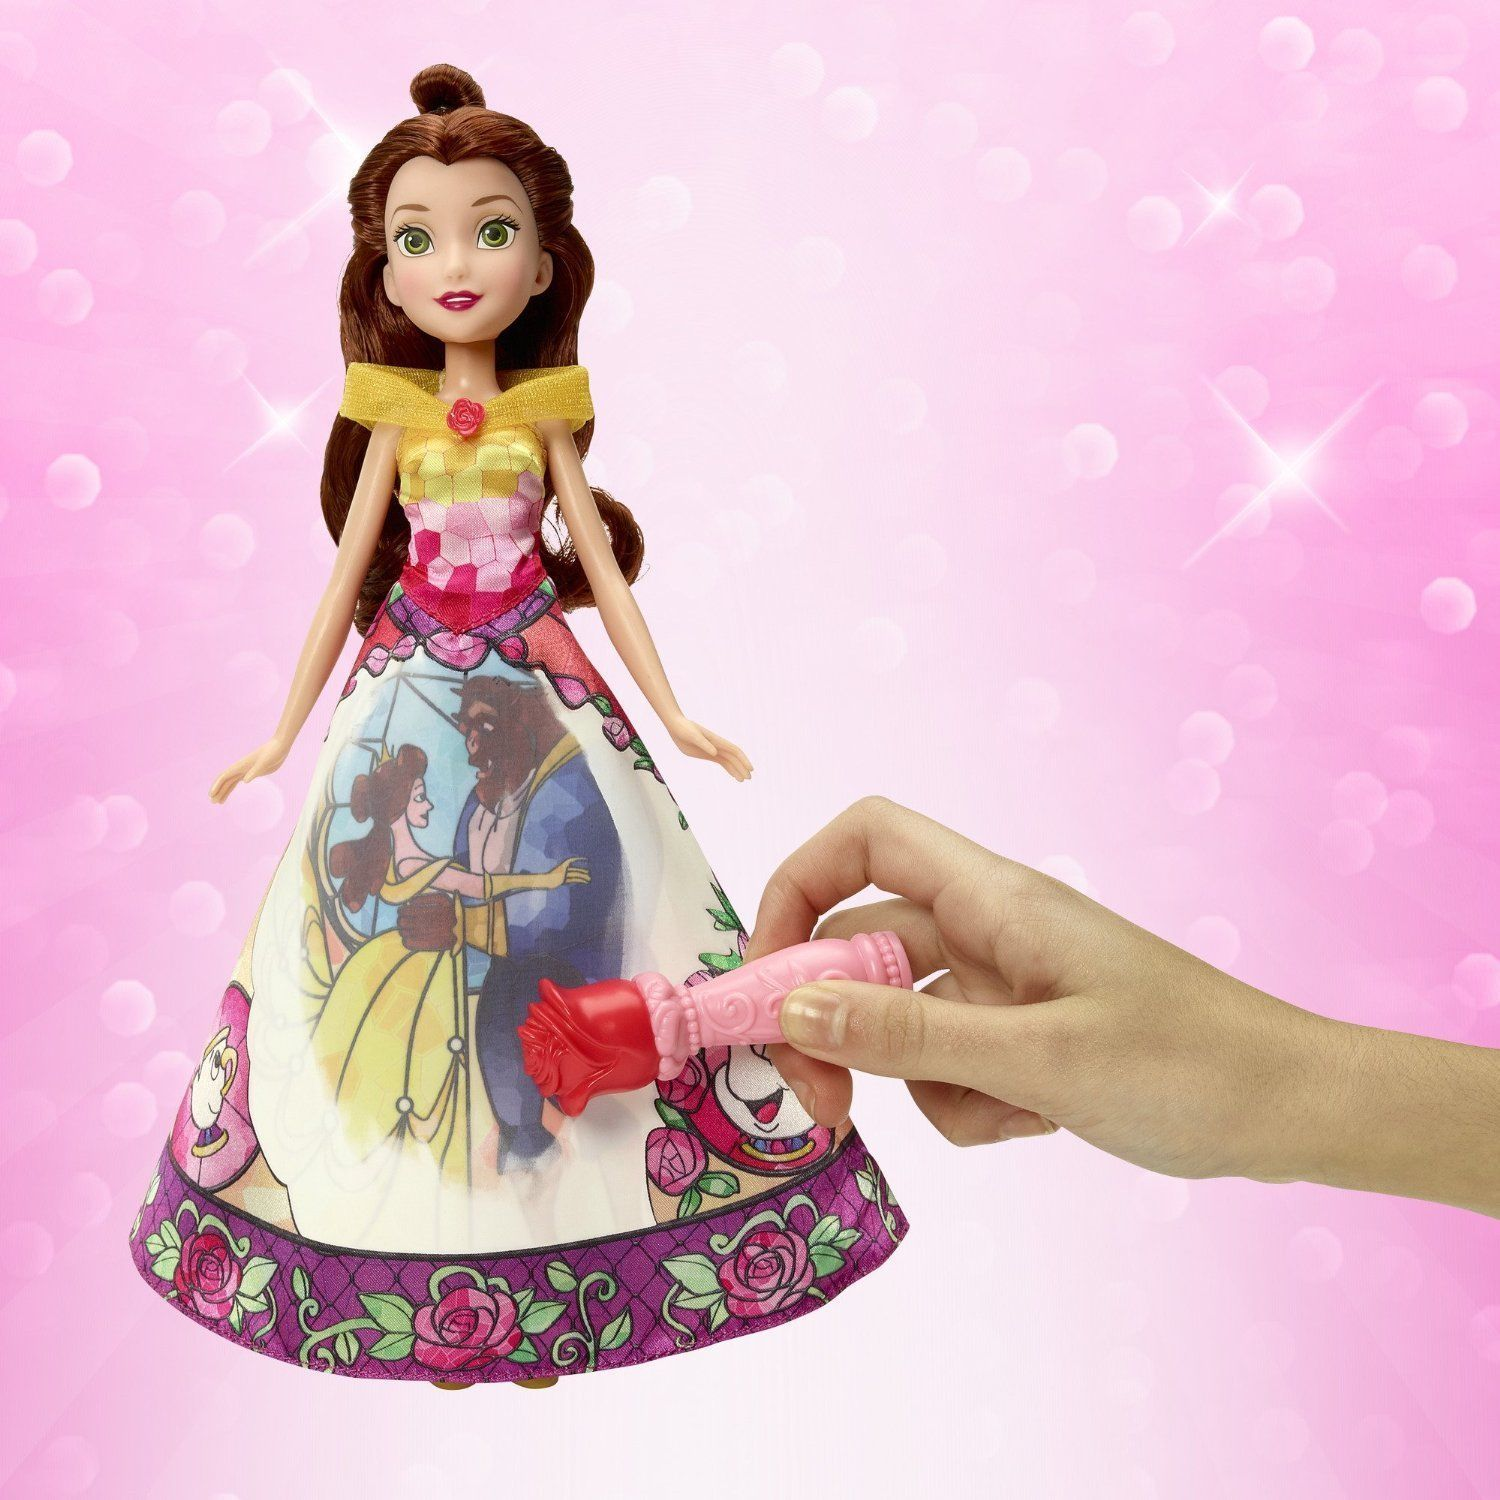 Image 4 of Disney Princess Belle's Magical Story Skirt Doll in Fuchsia/Yellow by Hasbro